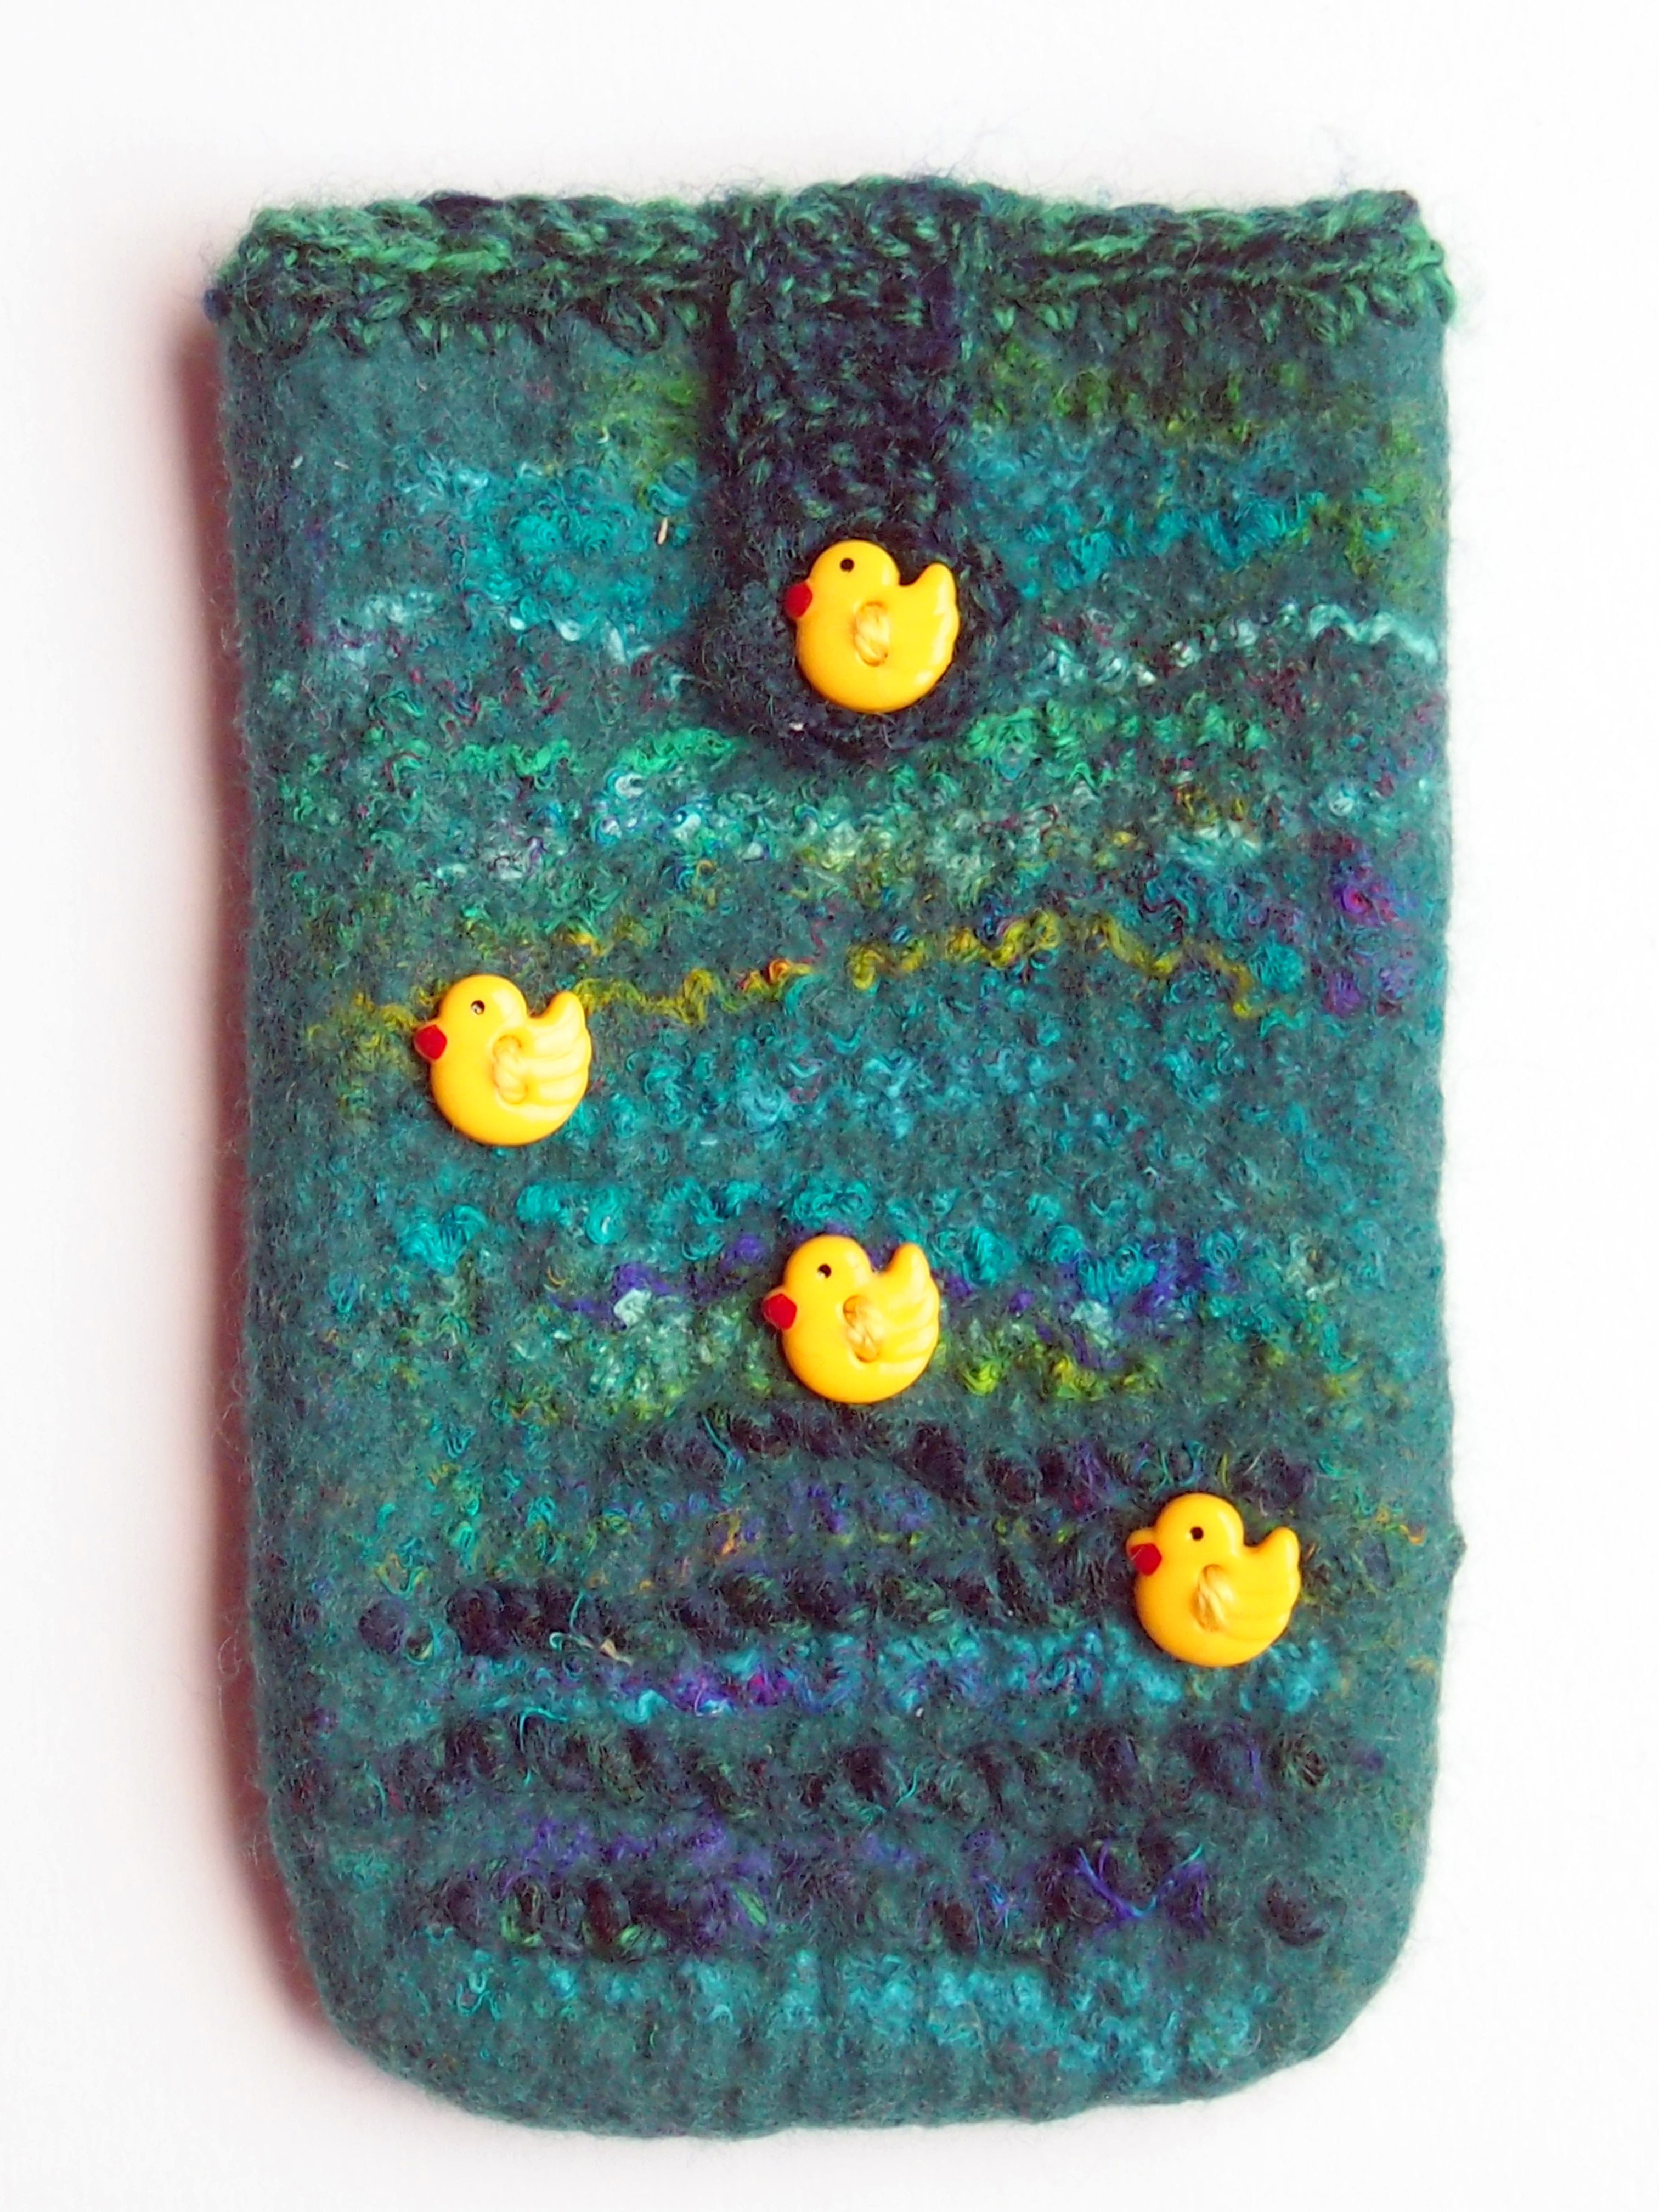 'Felted Mobile phone/glasses case' online course